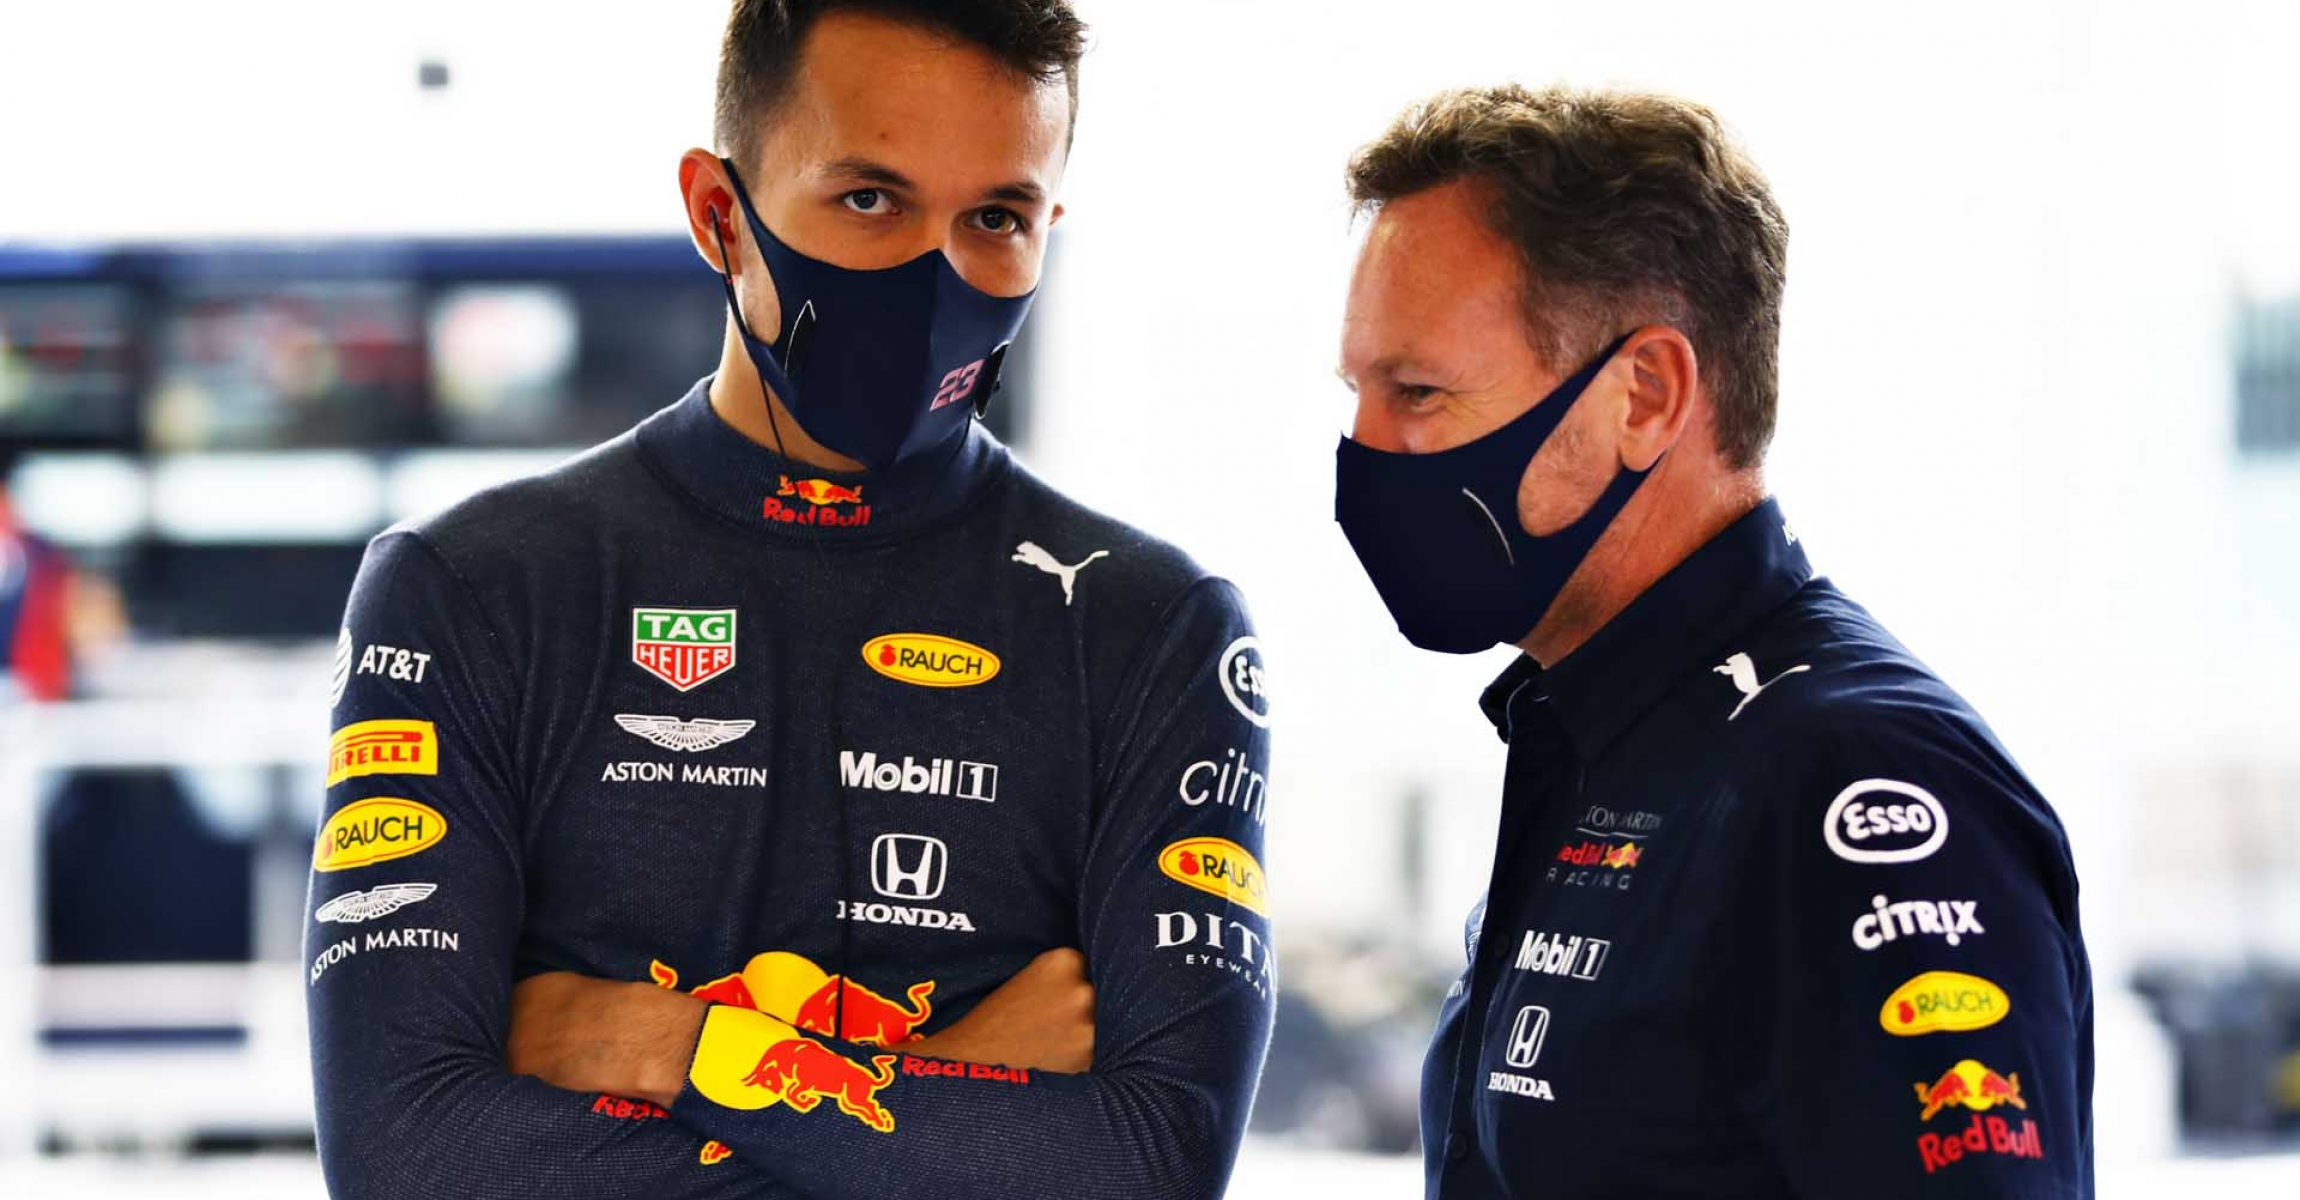 ABU DHABI, UNITED ARAB EMIRATES - DECEMBER 12: Alexander Albon of Thailand and Red Bull Racing and Red Bull Racing Team Principal Christian Horner talk in the garage prior to qualifying ahead of the F1 Grand Prix of Abu Dhabi at Yas Marina Circuit on December 12, 2020 in Abu Dhabi, United Arab Emirates. (Photo by Mark Thompson/Getty Images)